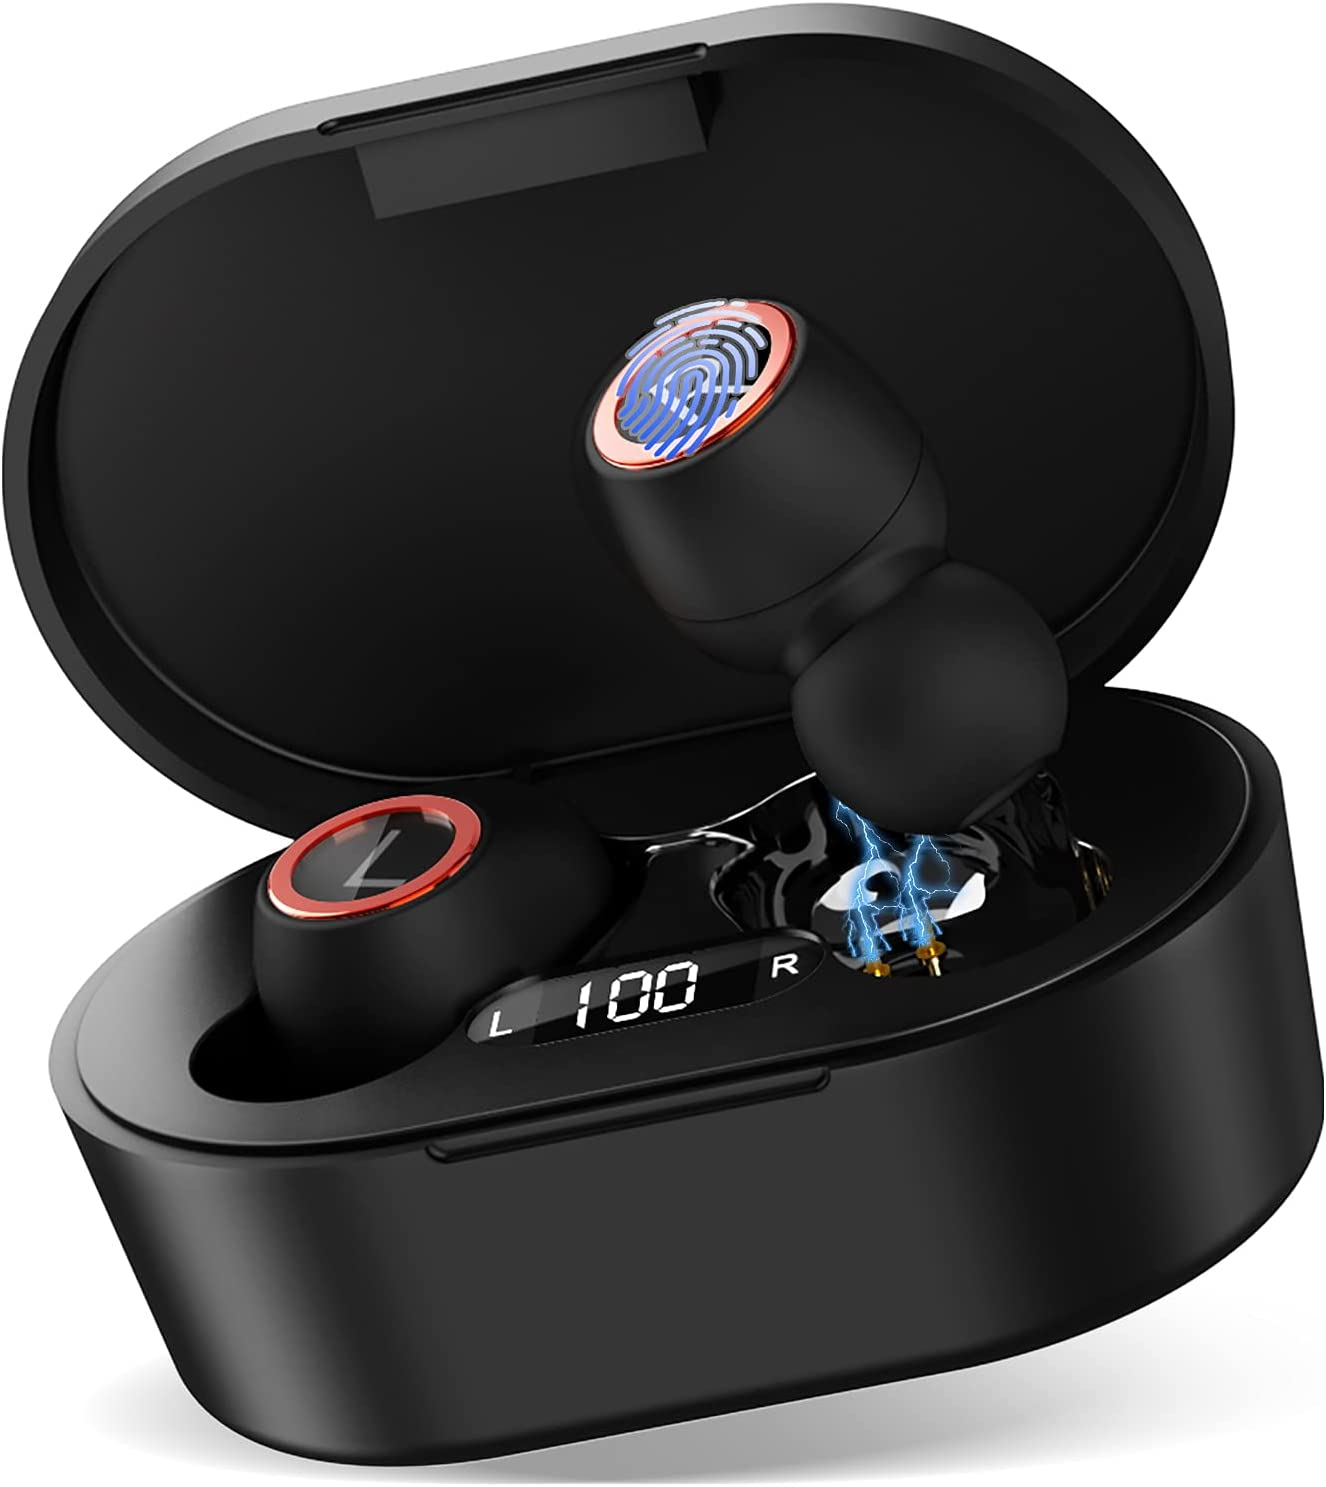 UX923 Wireless Max 65% OFF Earbuds Ranking integrated 1st place Bluetooth 5.0 Premium Sport Headphones So